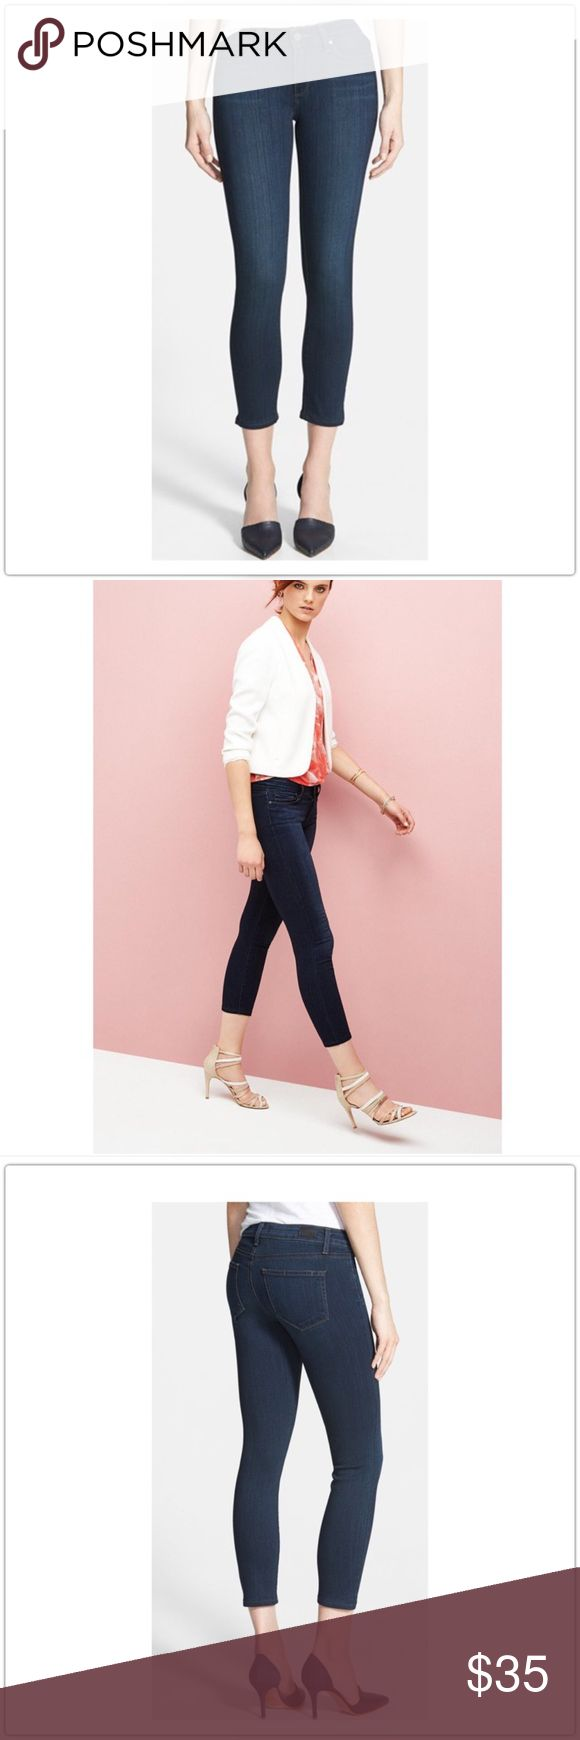 Paige Vedugo Crop Jeans 26 Paige Dark wash, factory whiskered Crop skinny Jeans. Color is called Cameron. Size 26. Quite a bit of stretch in fabric. You can see some pulling in fabric where the factory whiskering is. Look wonderful on!! Can not see any defect while wearing. Paige Jeans Jeans